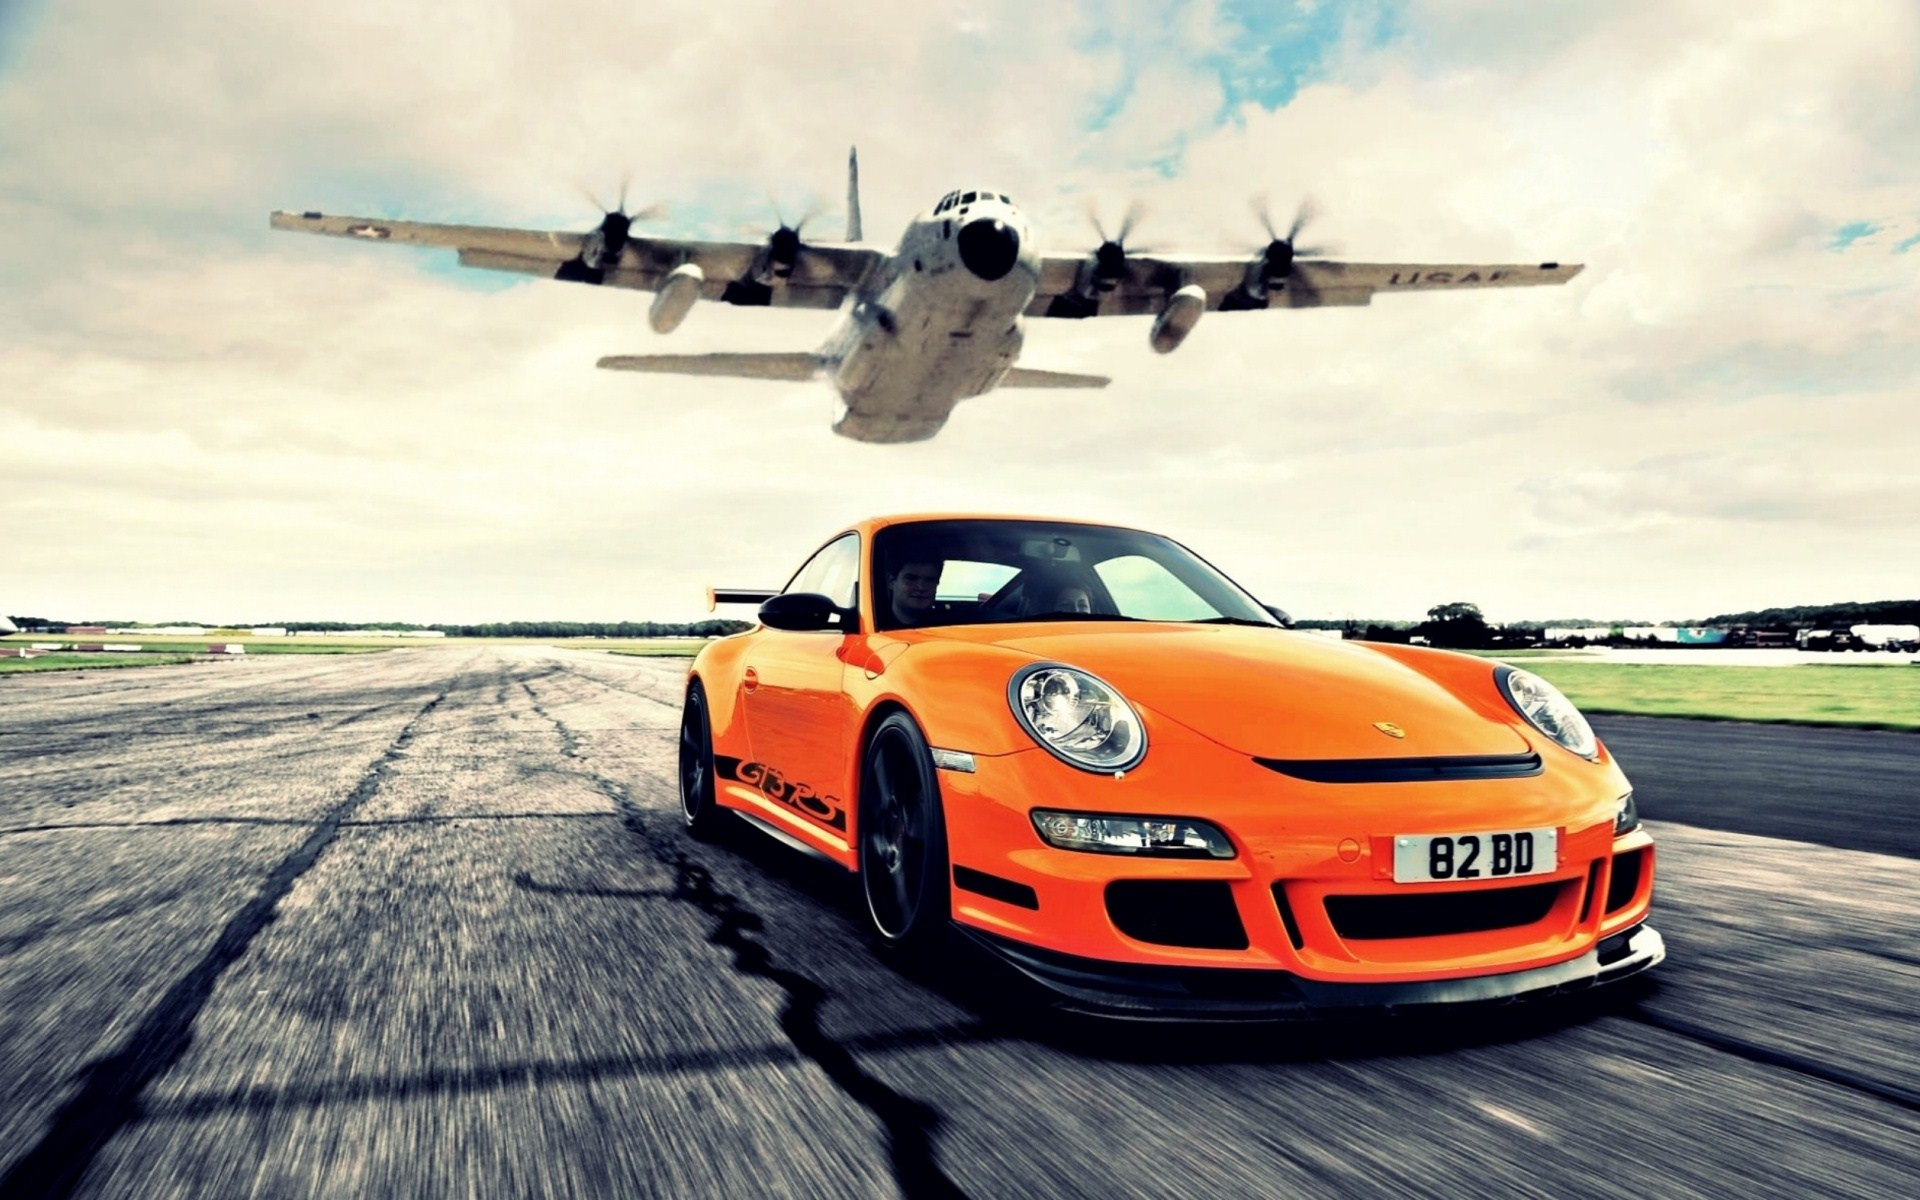 Porsche GT3 RS Aircraft Photo HD Image Wallpaper | HD Car Wallpaper | Things to Wear | Pinterest